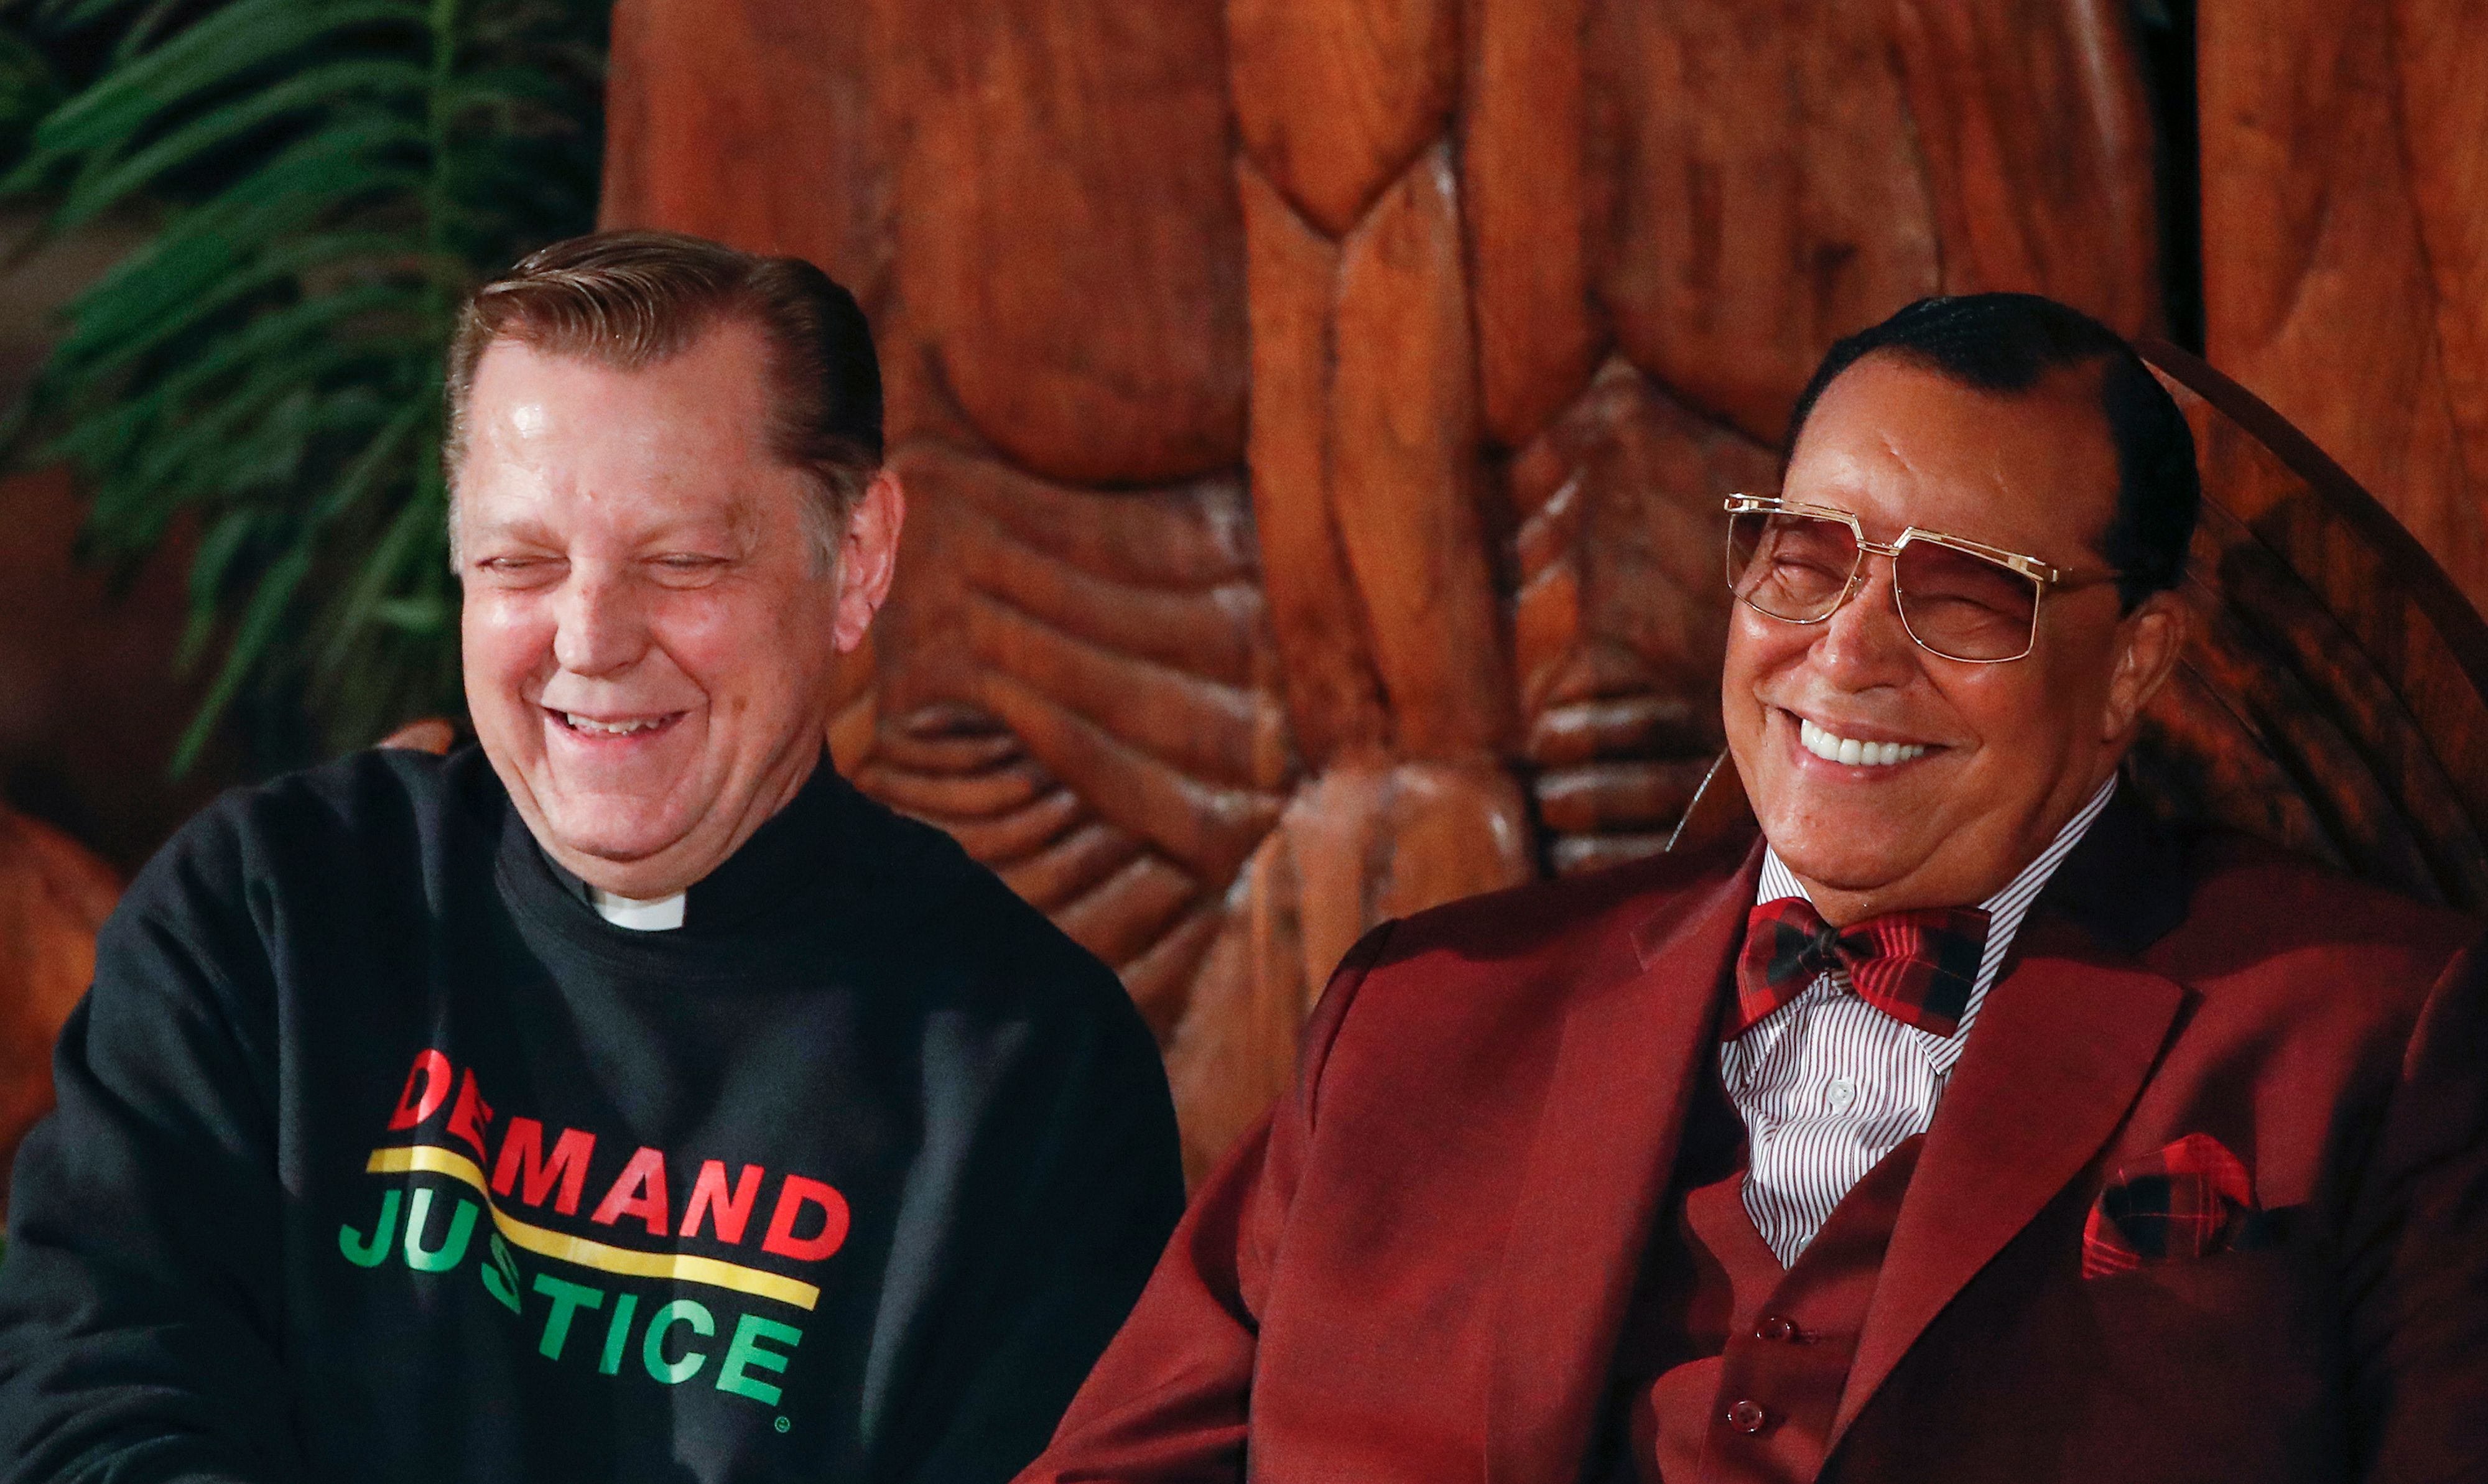 Father Michael Pfleger (L) shares a laugh with Nation of Islam leader Louis Farrakhan (R) during an event regarding his ousting from Facebook, at St. Sabina Catholic Church in Chicago, Illionis on May 9, 2019. (KAMIL KRZACZYNSKI/AFP/Getty Images)